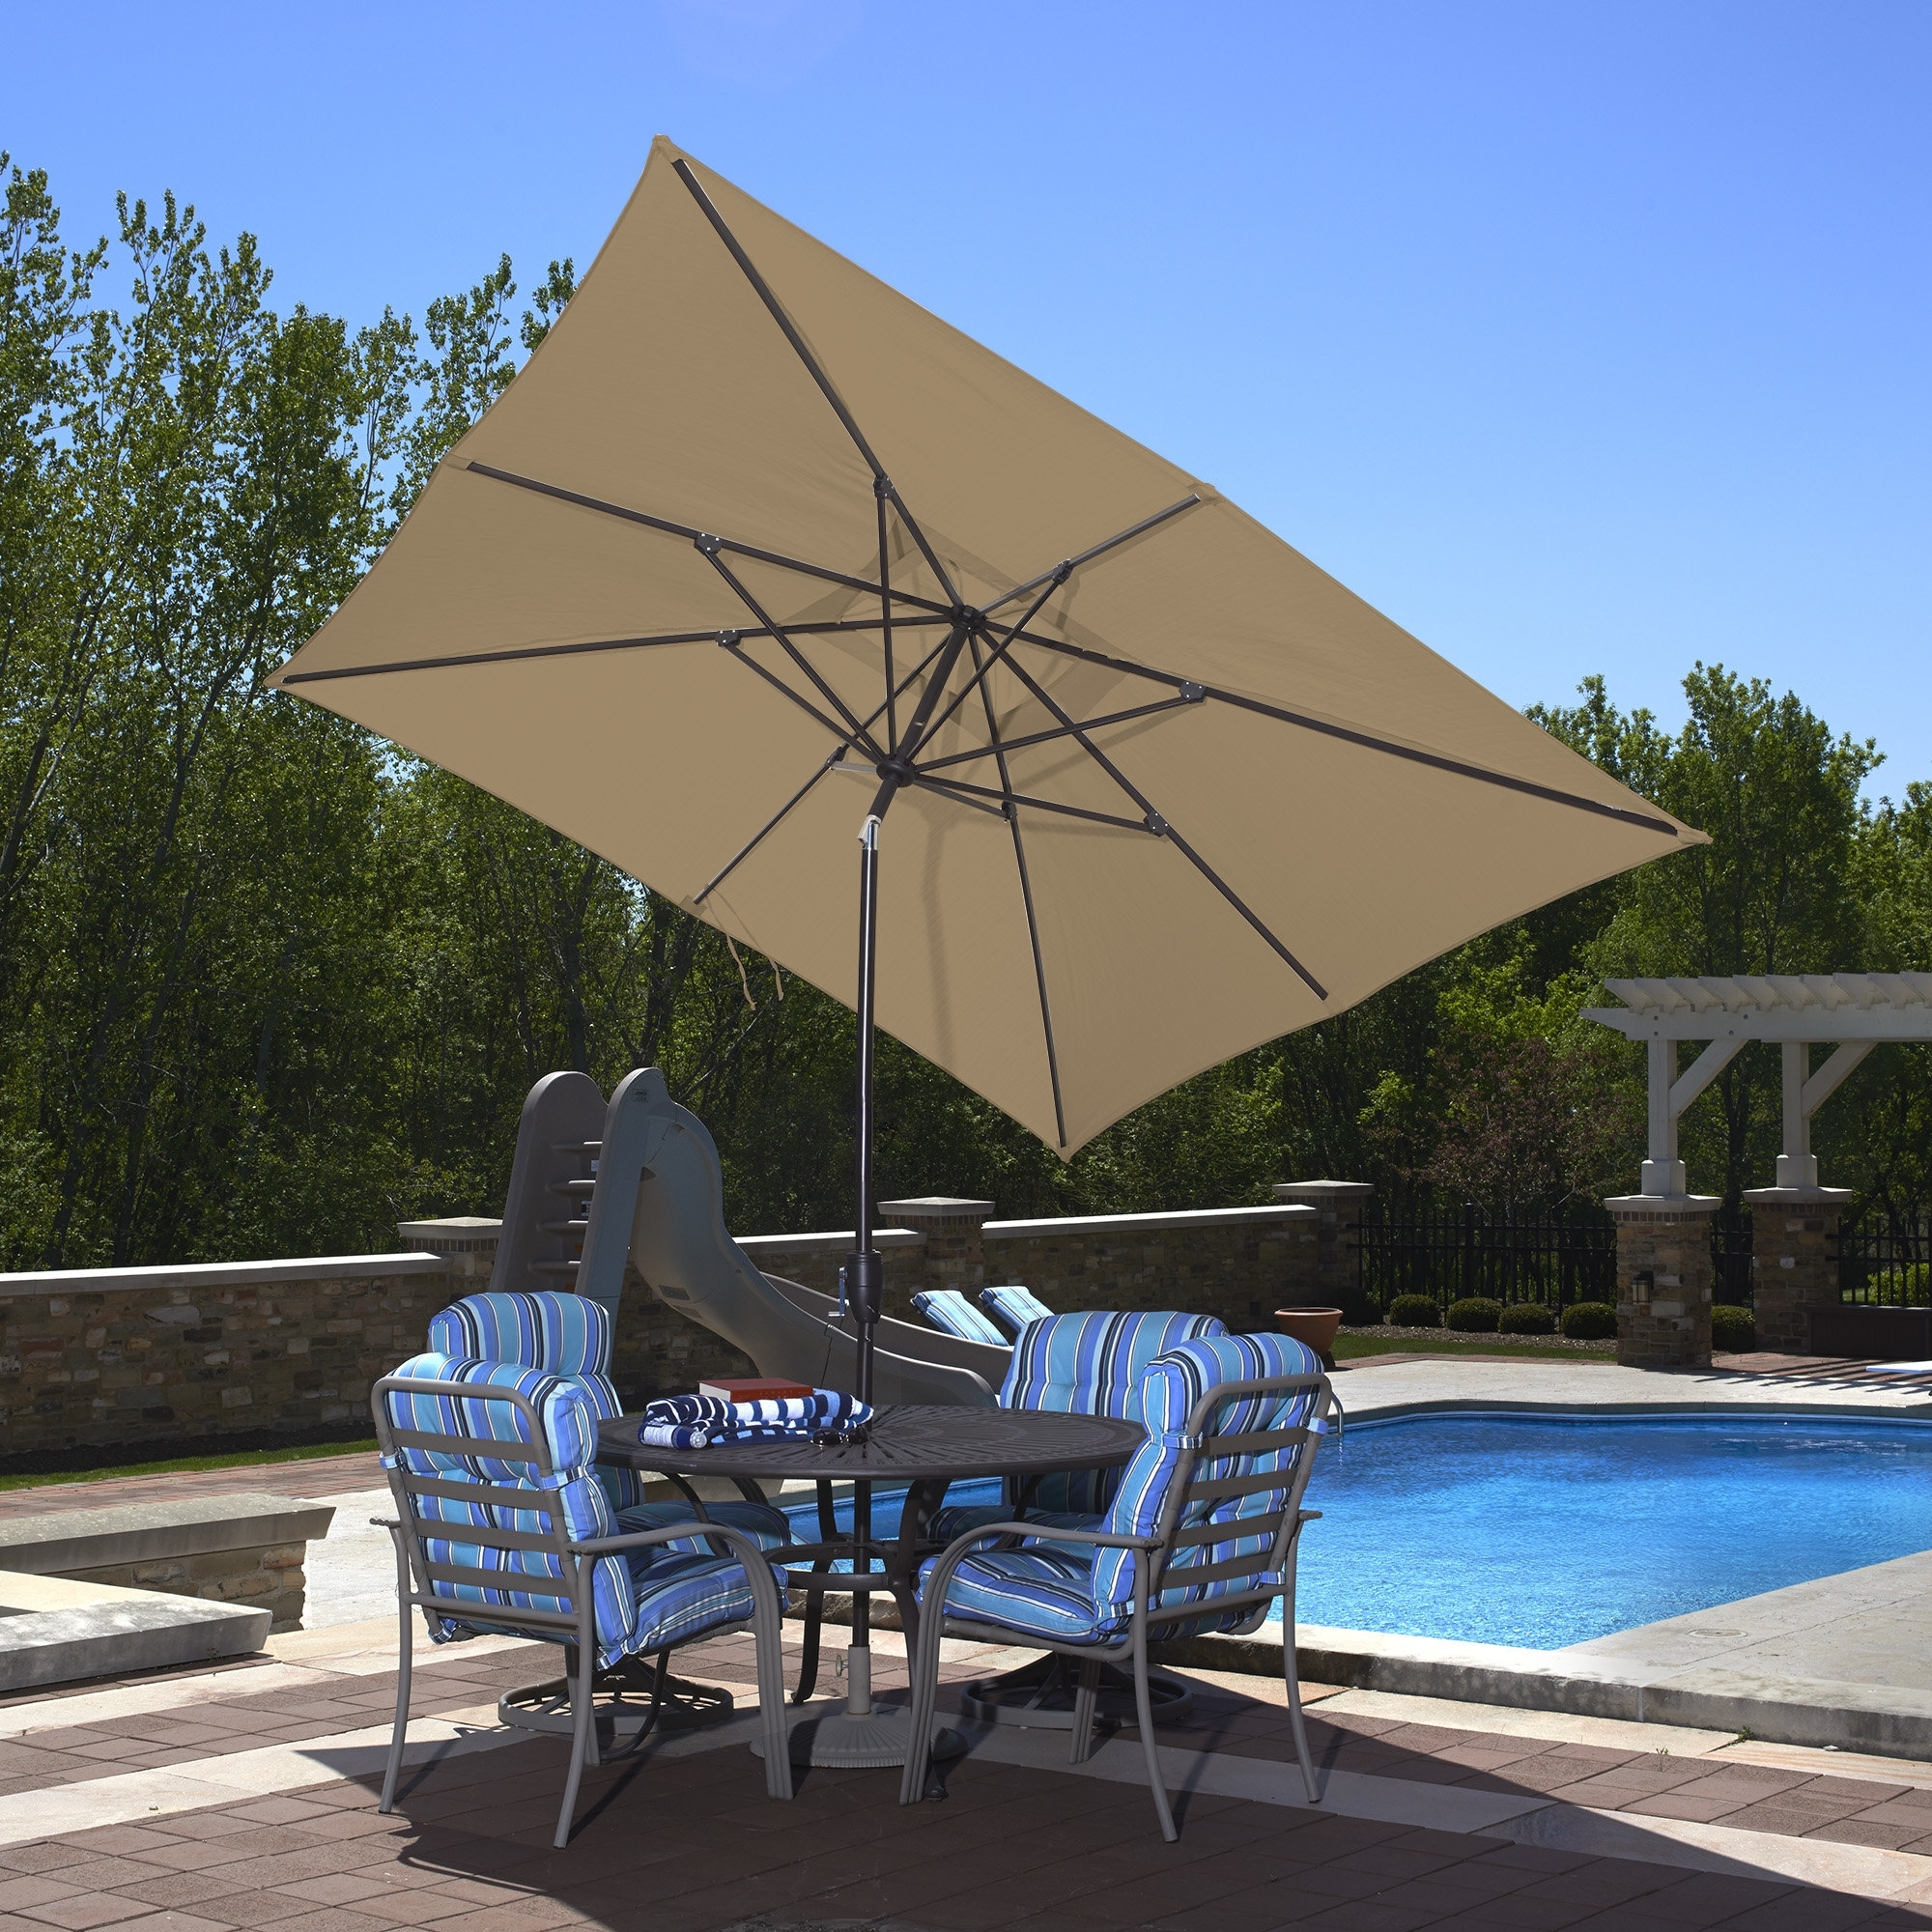 Wayfair Patio Umbrellas With Best And Newest Blue Wave 10' X 8' Rectangular Market Umbrella & Reviews (View 13 of 20)